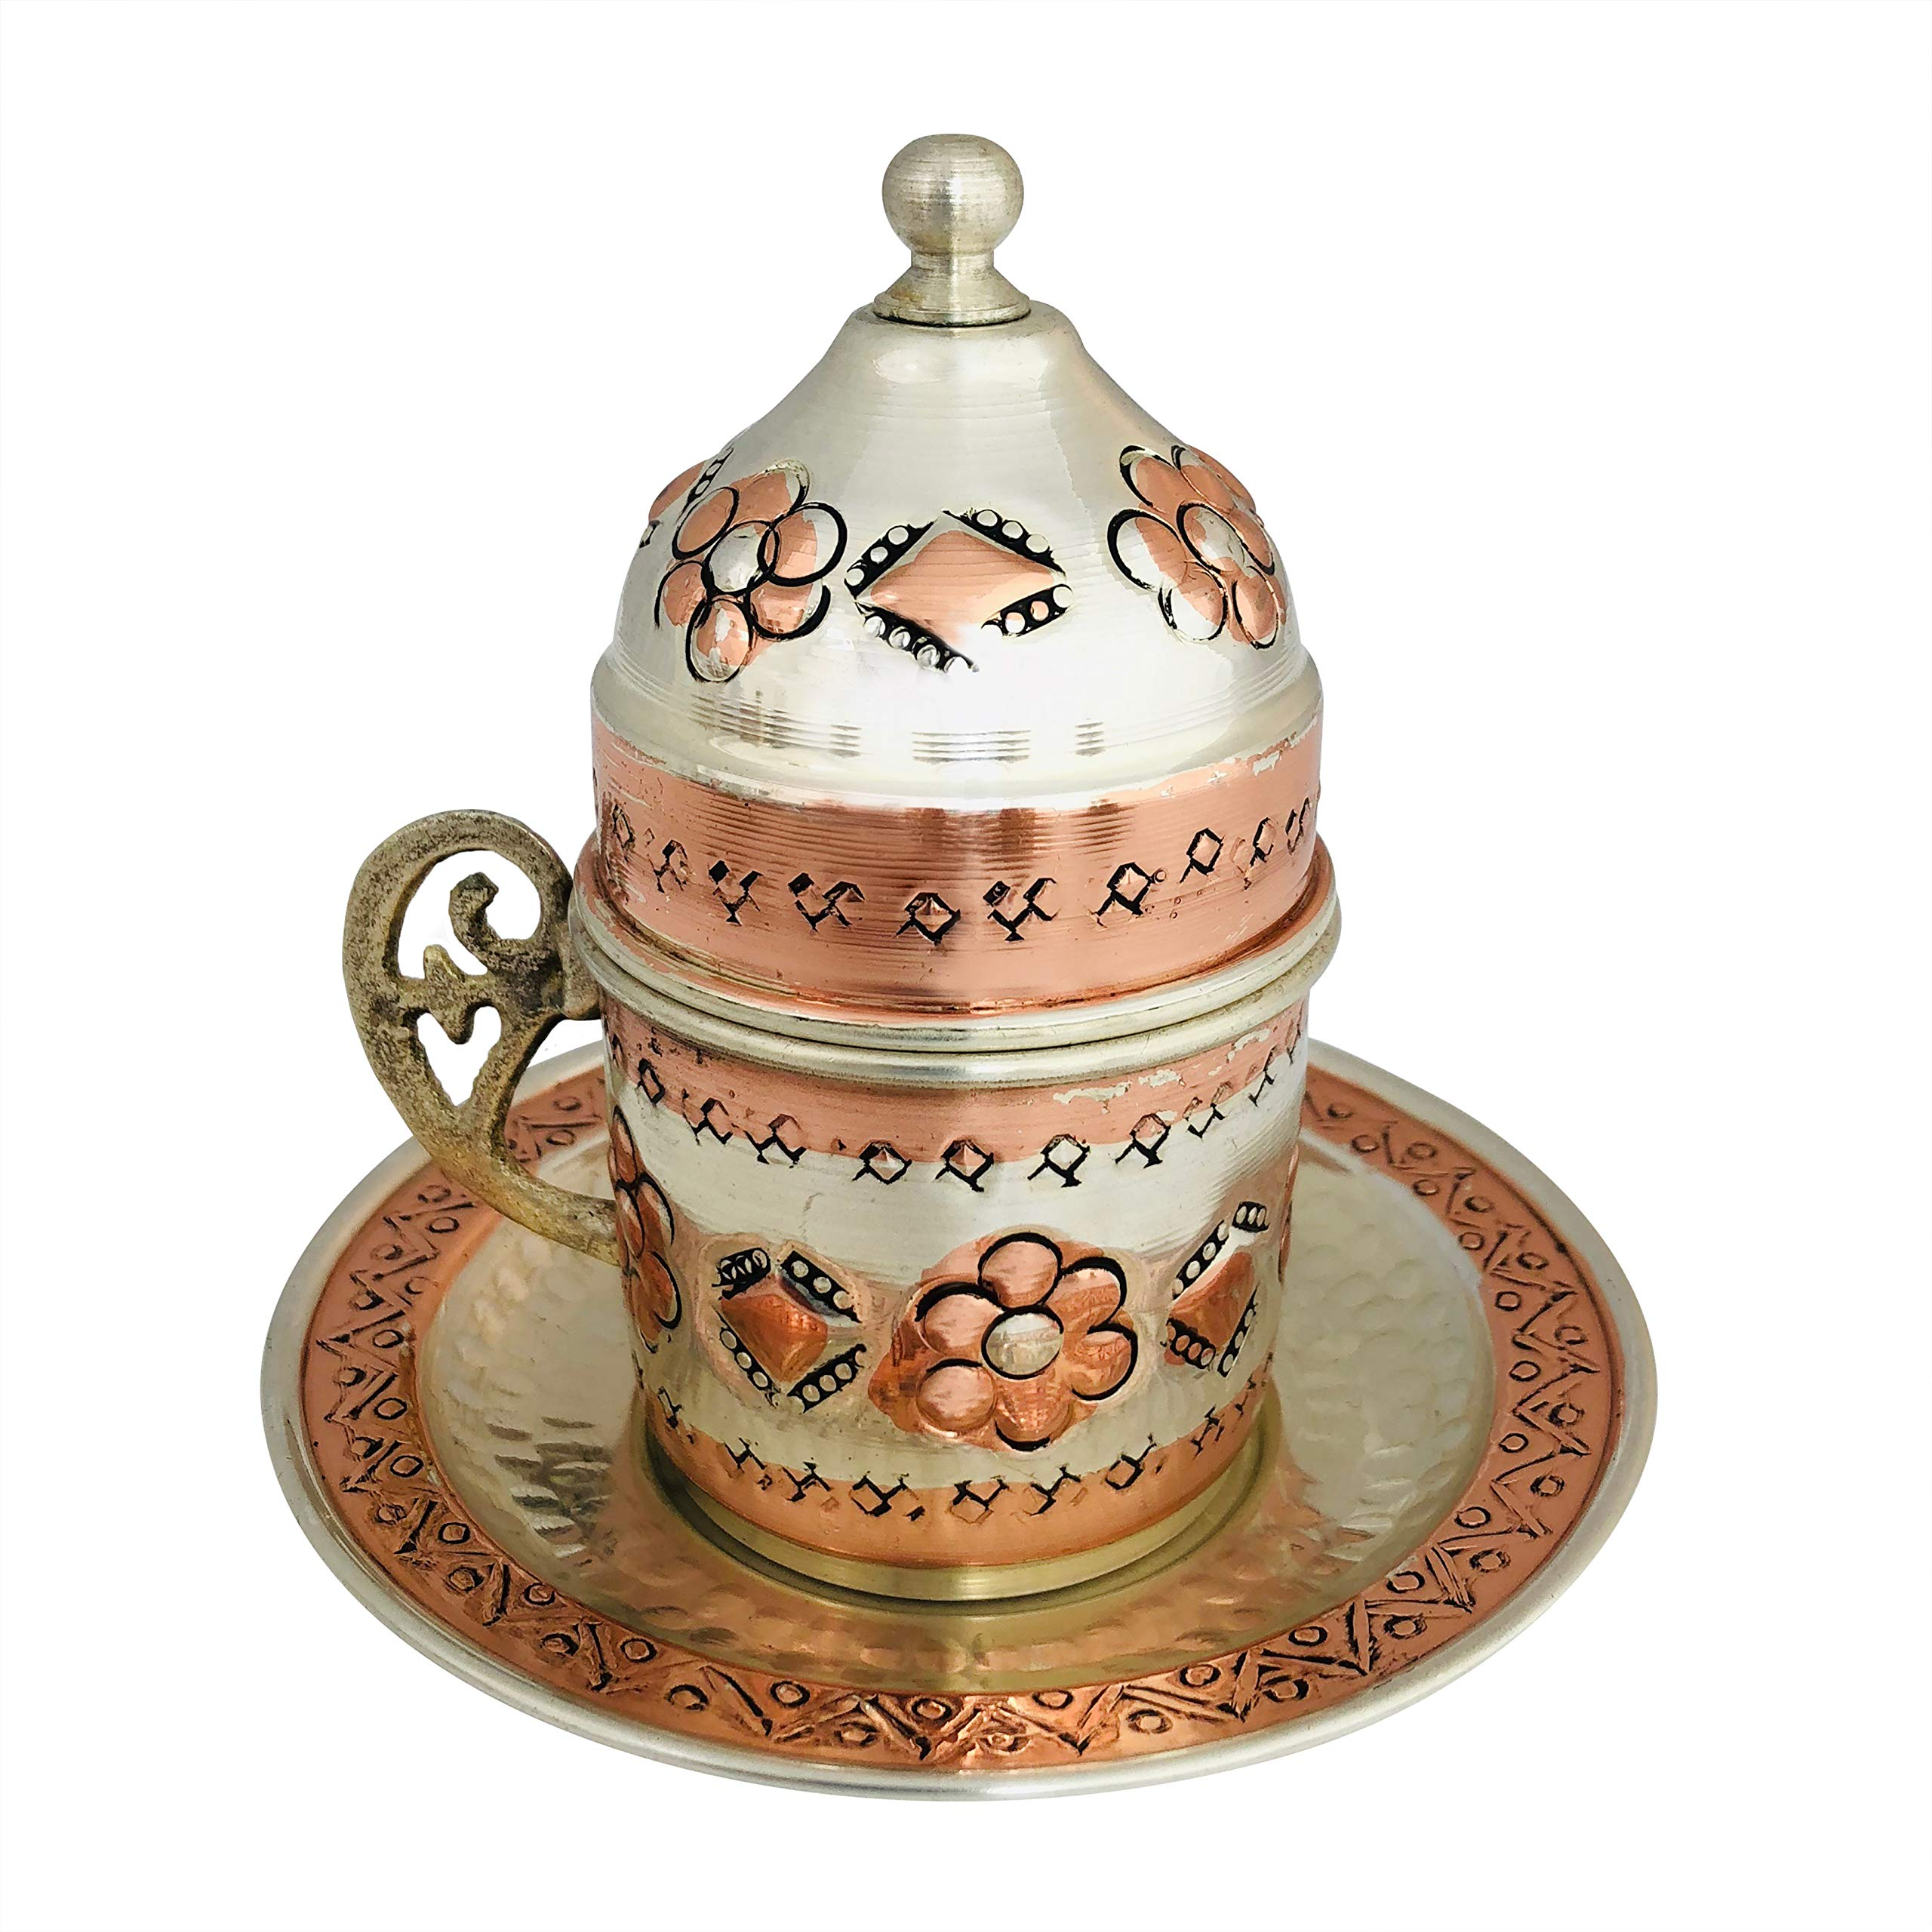 Copper Turkish Coffee Set, Six Greek Armenian Arabic Espresso Porcelain Cups Tray Sugar Bowl, with Silver-plate detail, Handcrafted by Mandalina Magic by Mandalina Magic (Image #3)